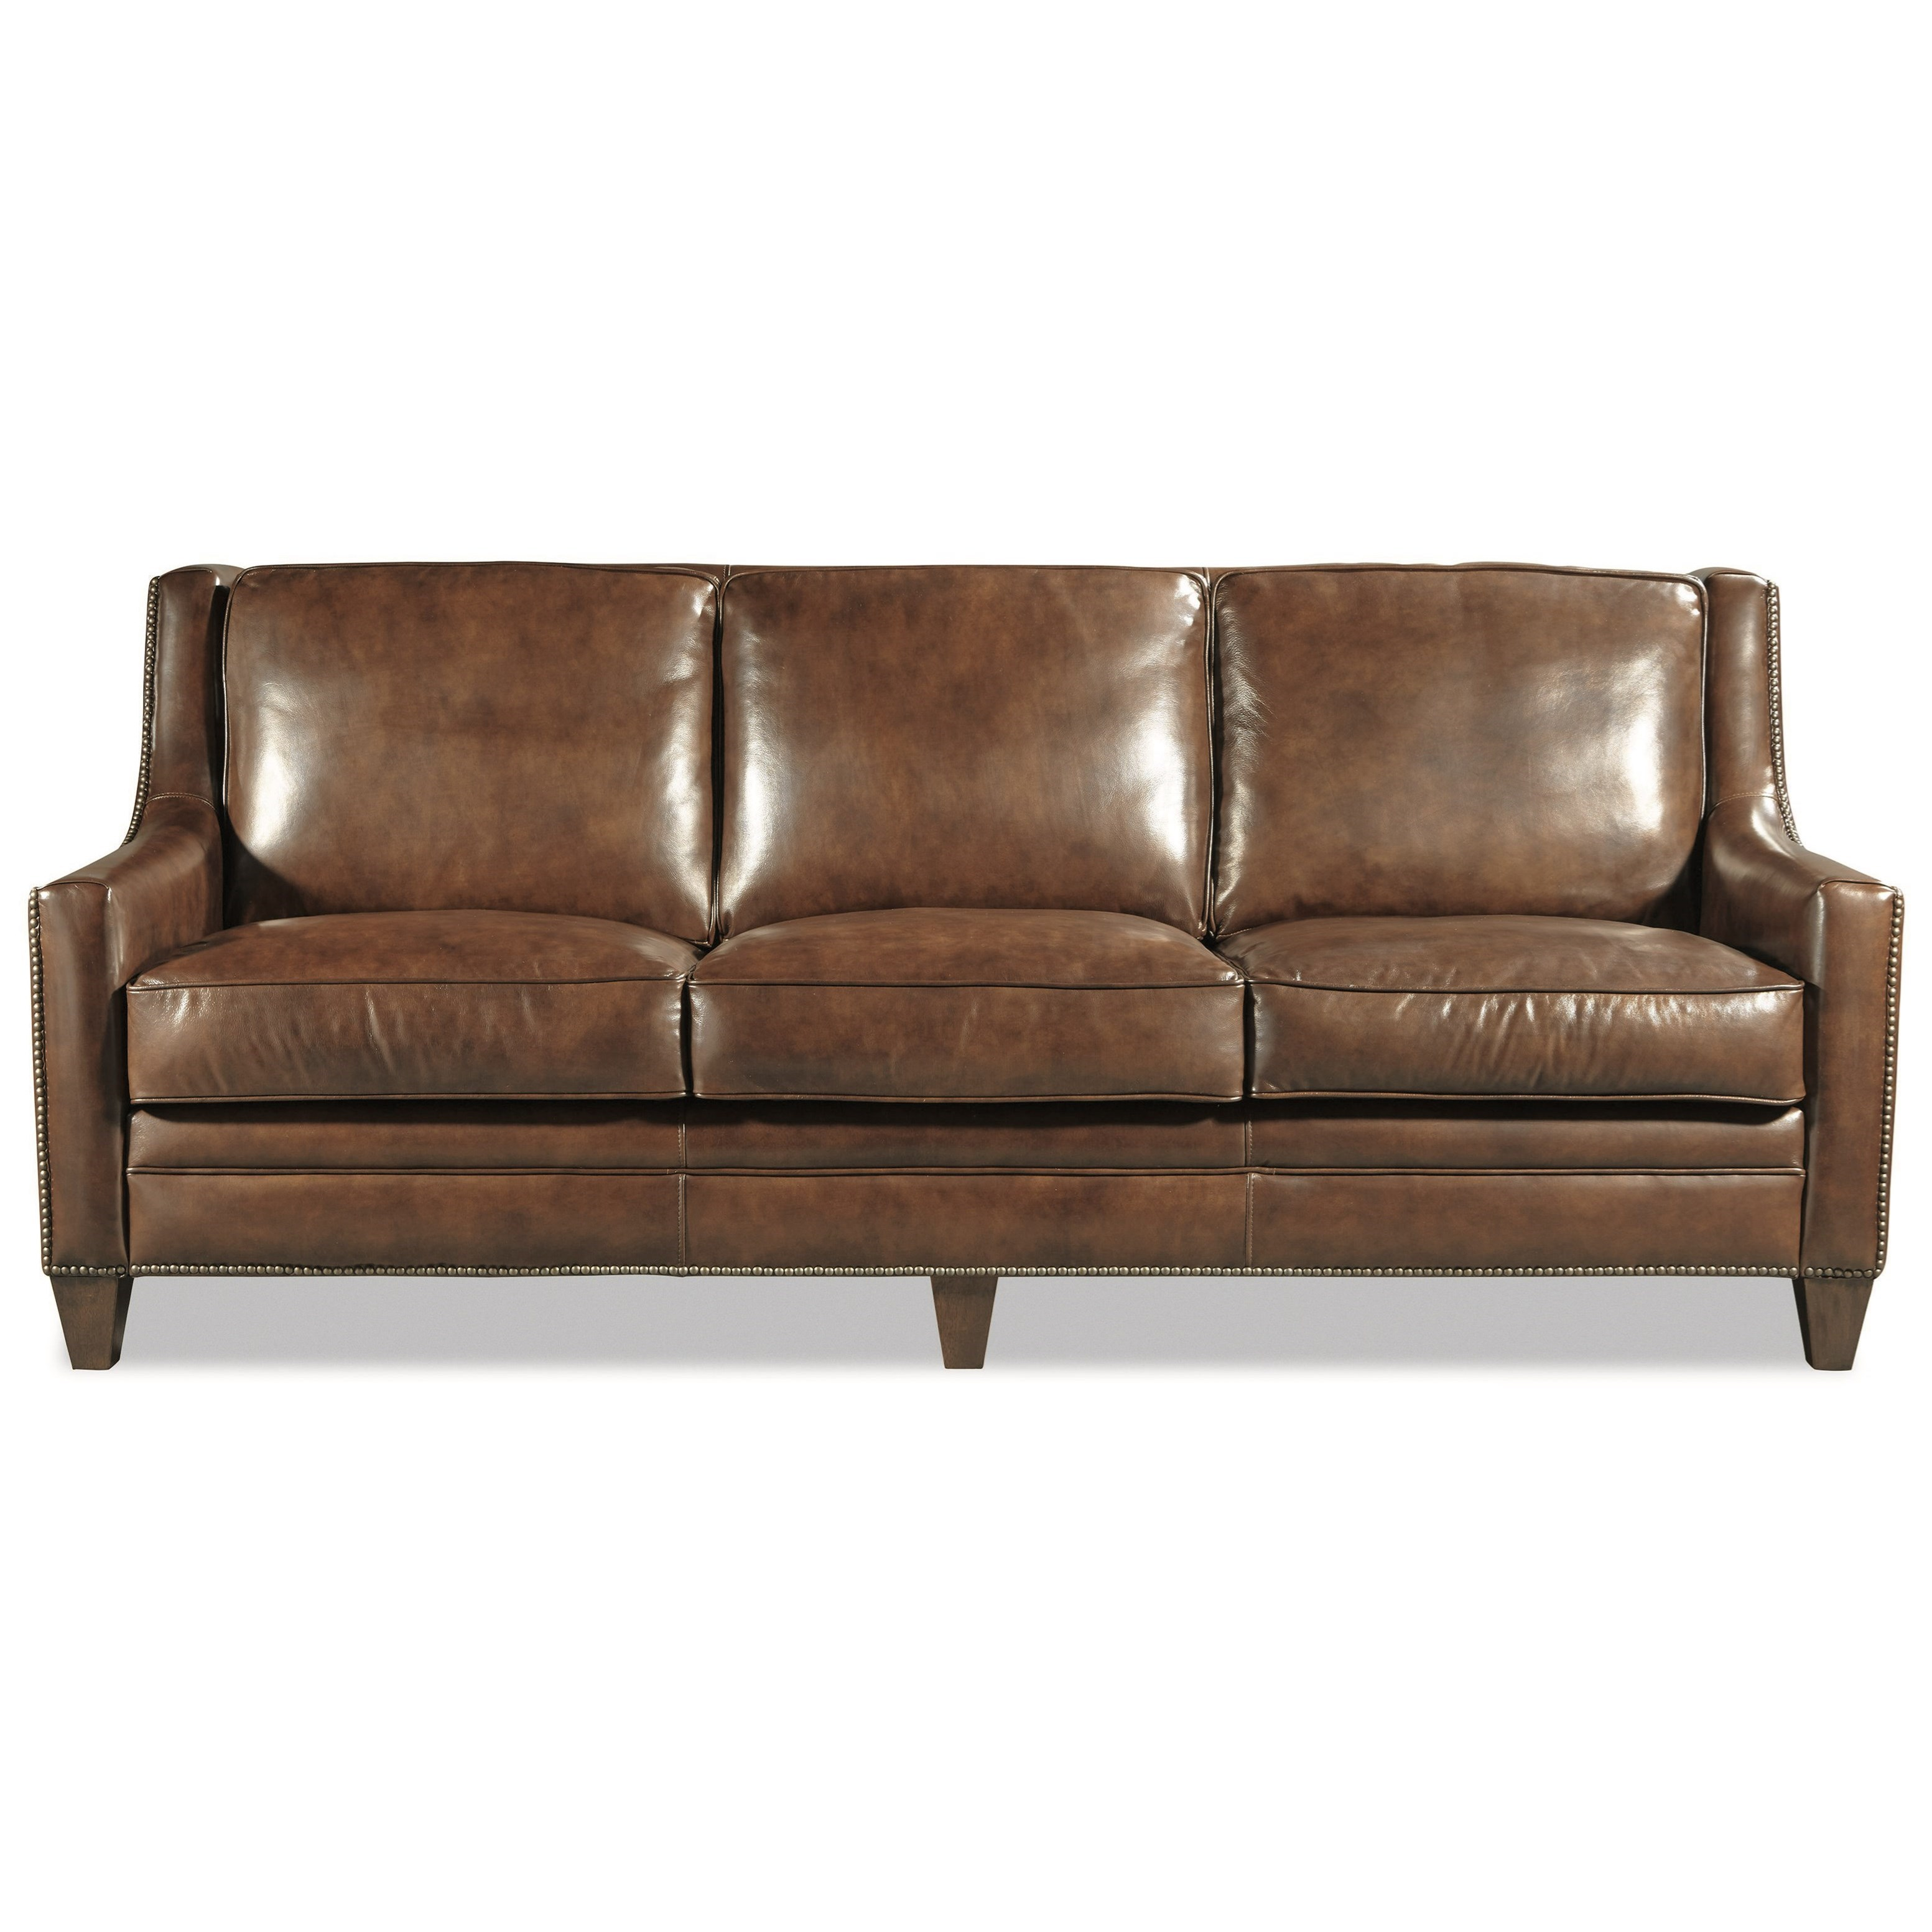 Craftmaster l1625 l162550 transitional nailhead studded for Studded sofa sets